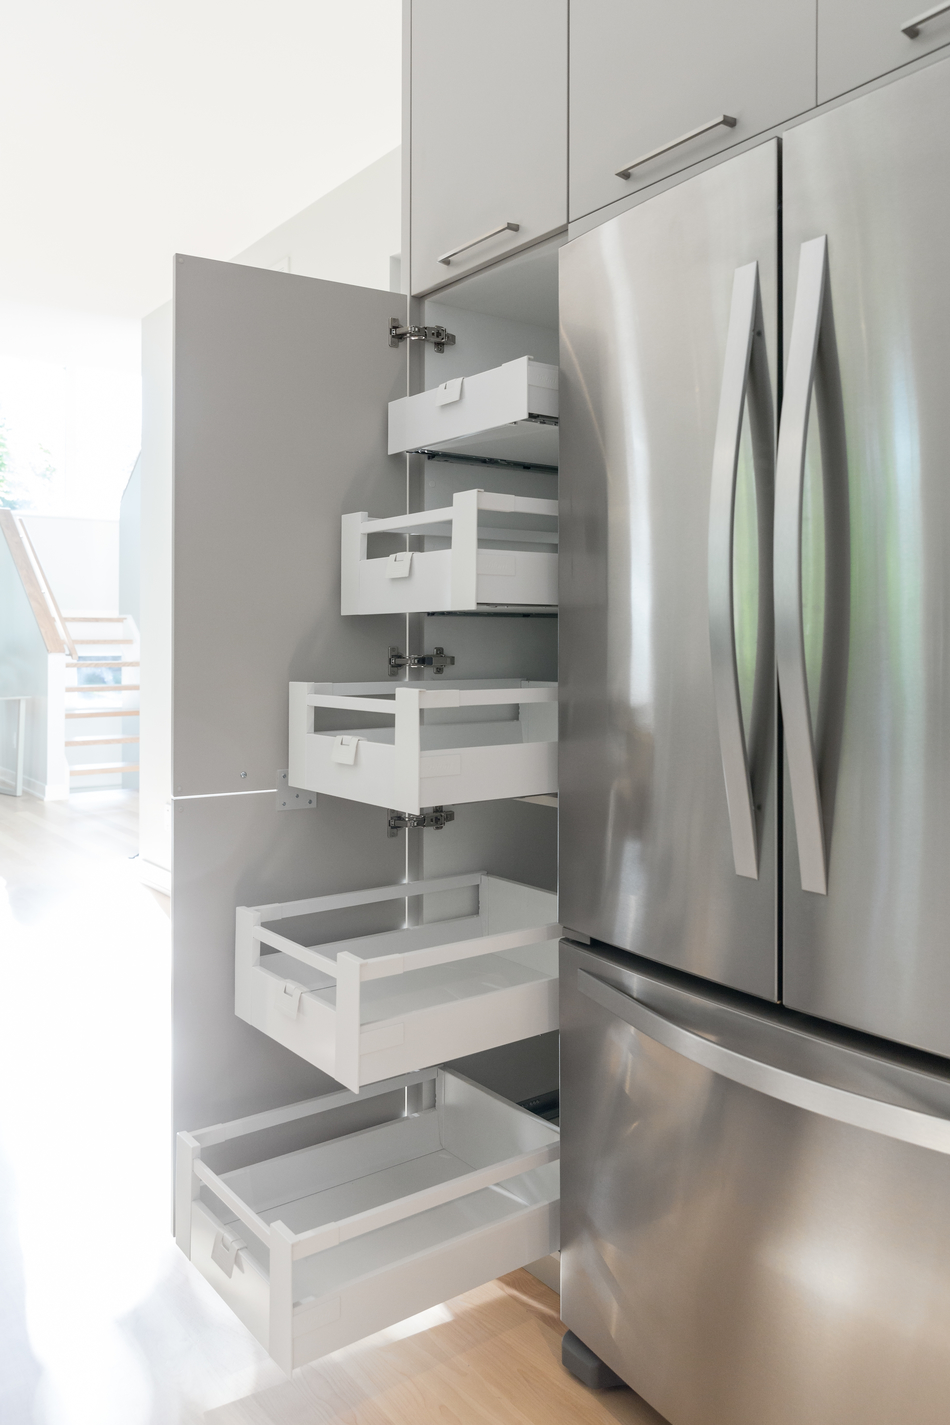 A pantry with roll-out shelves